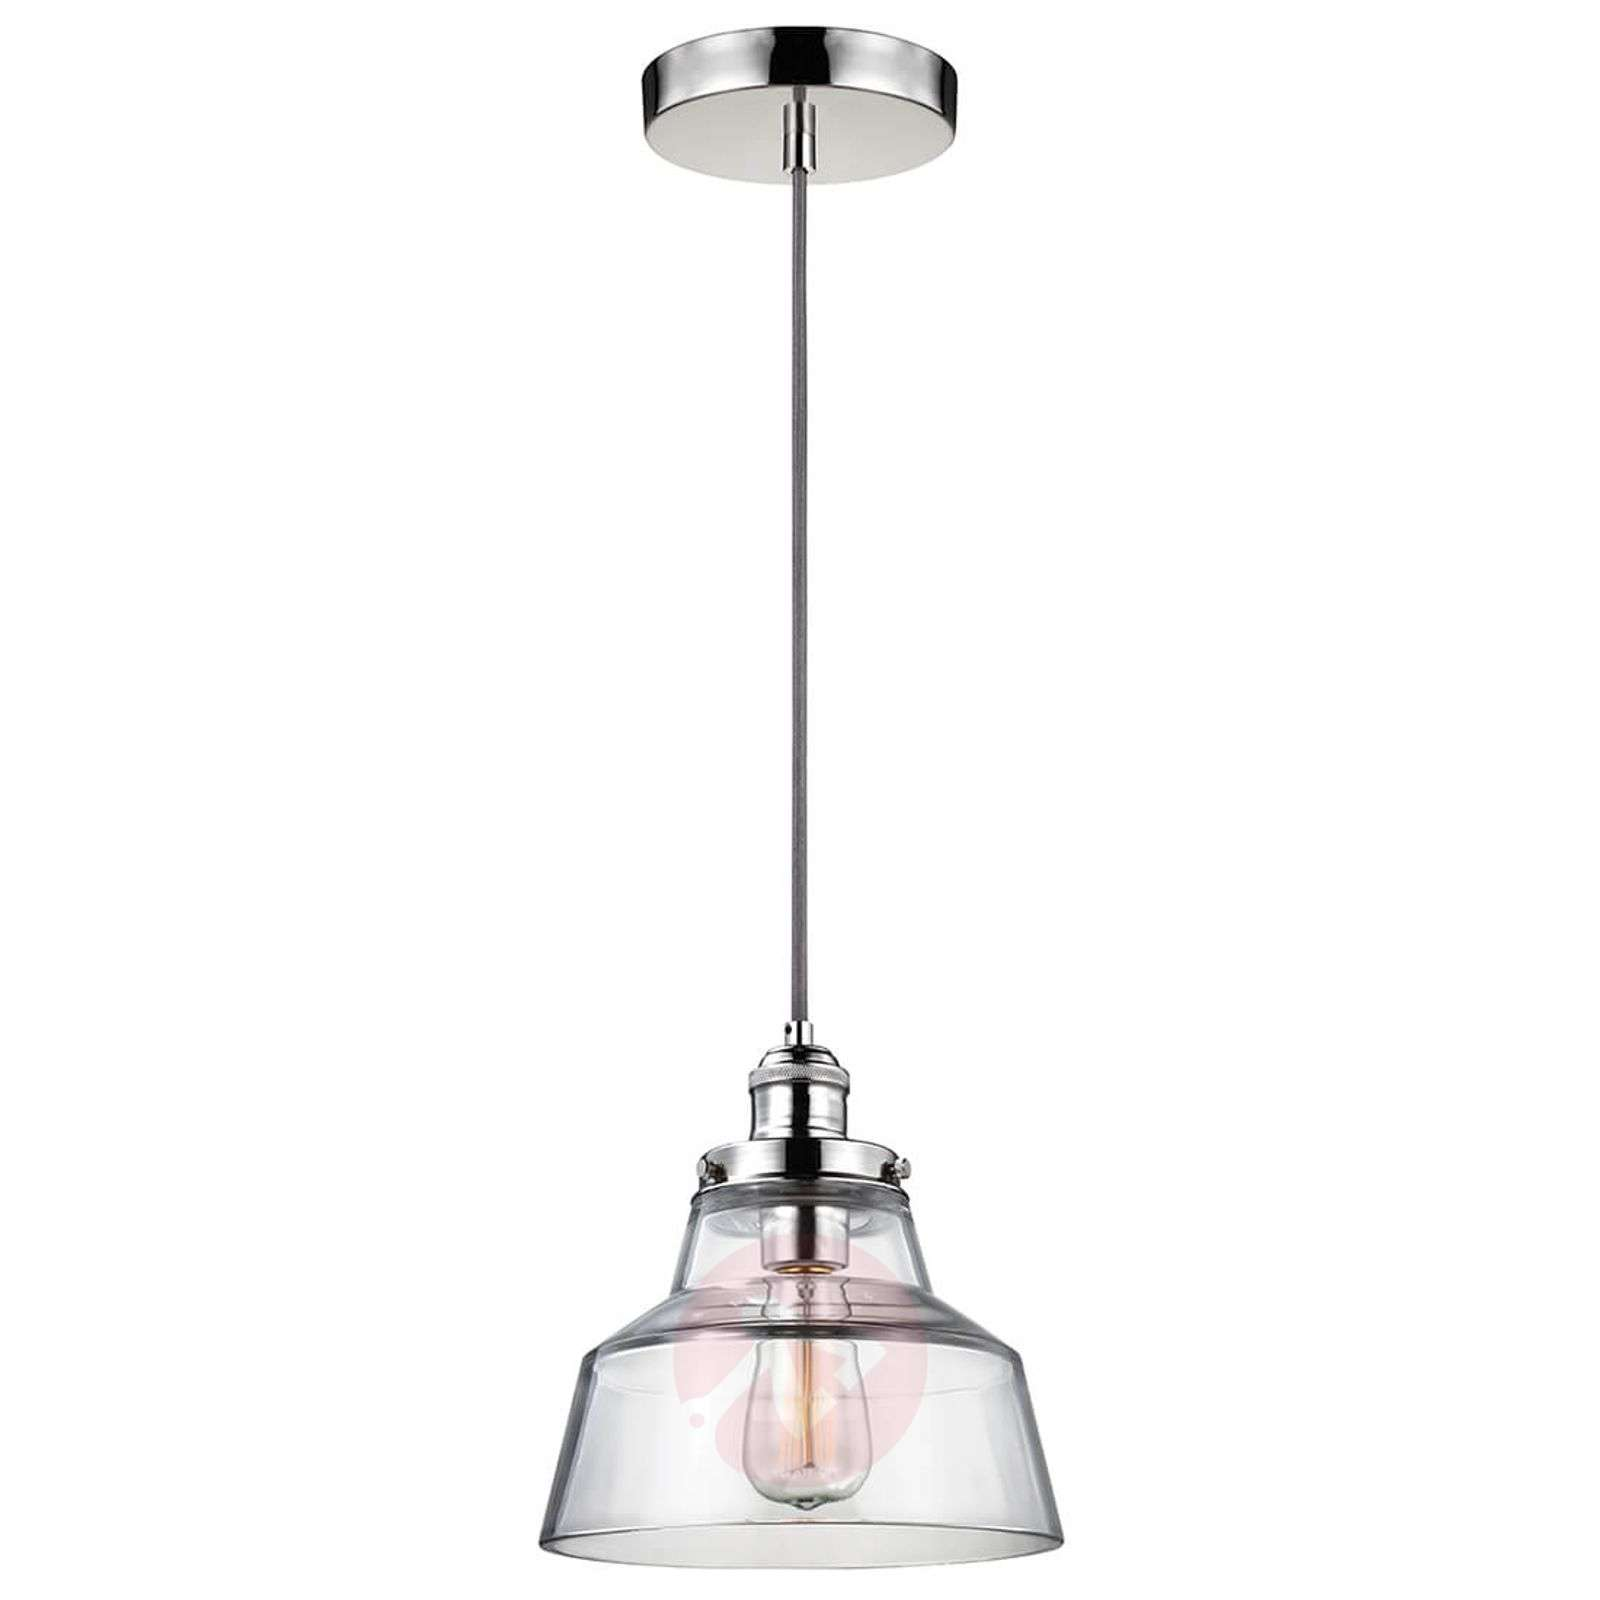 Pendant light Baskin A polished nickel suspension-3048801-01